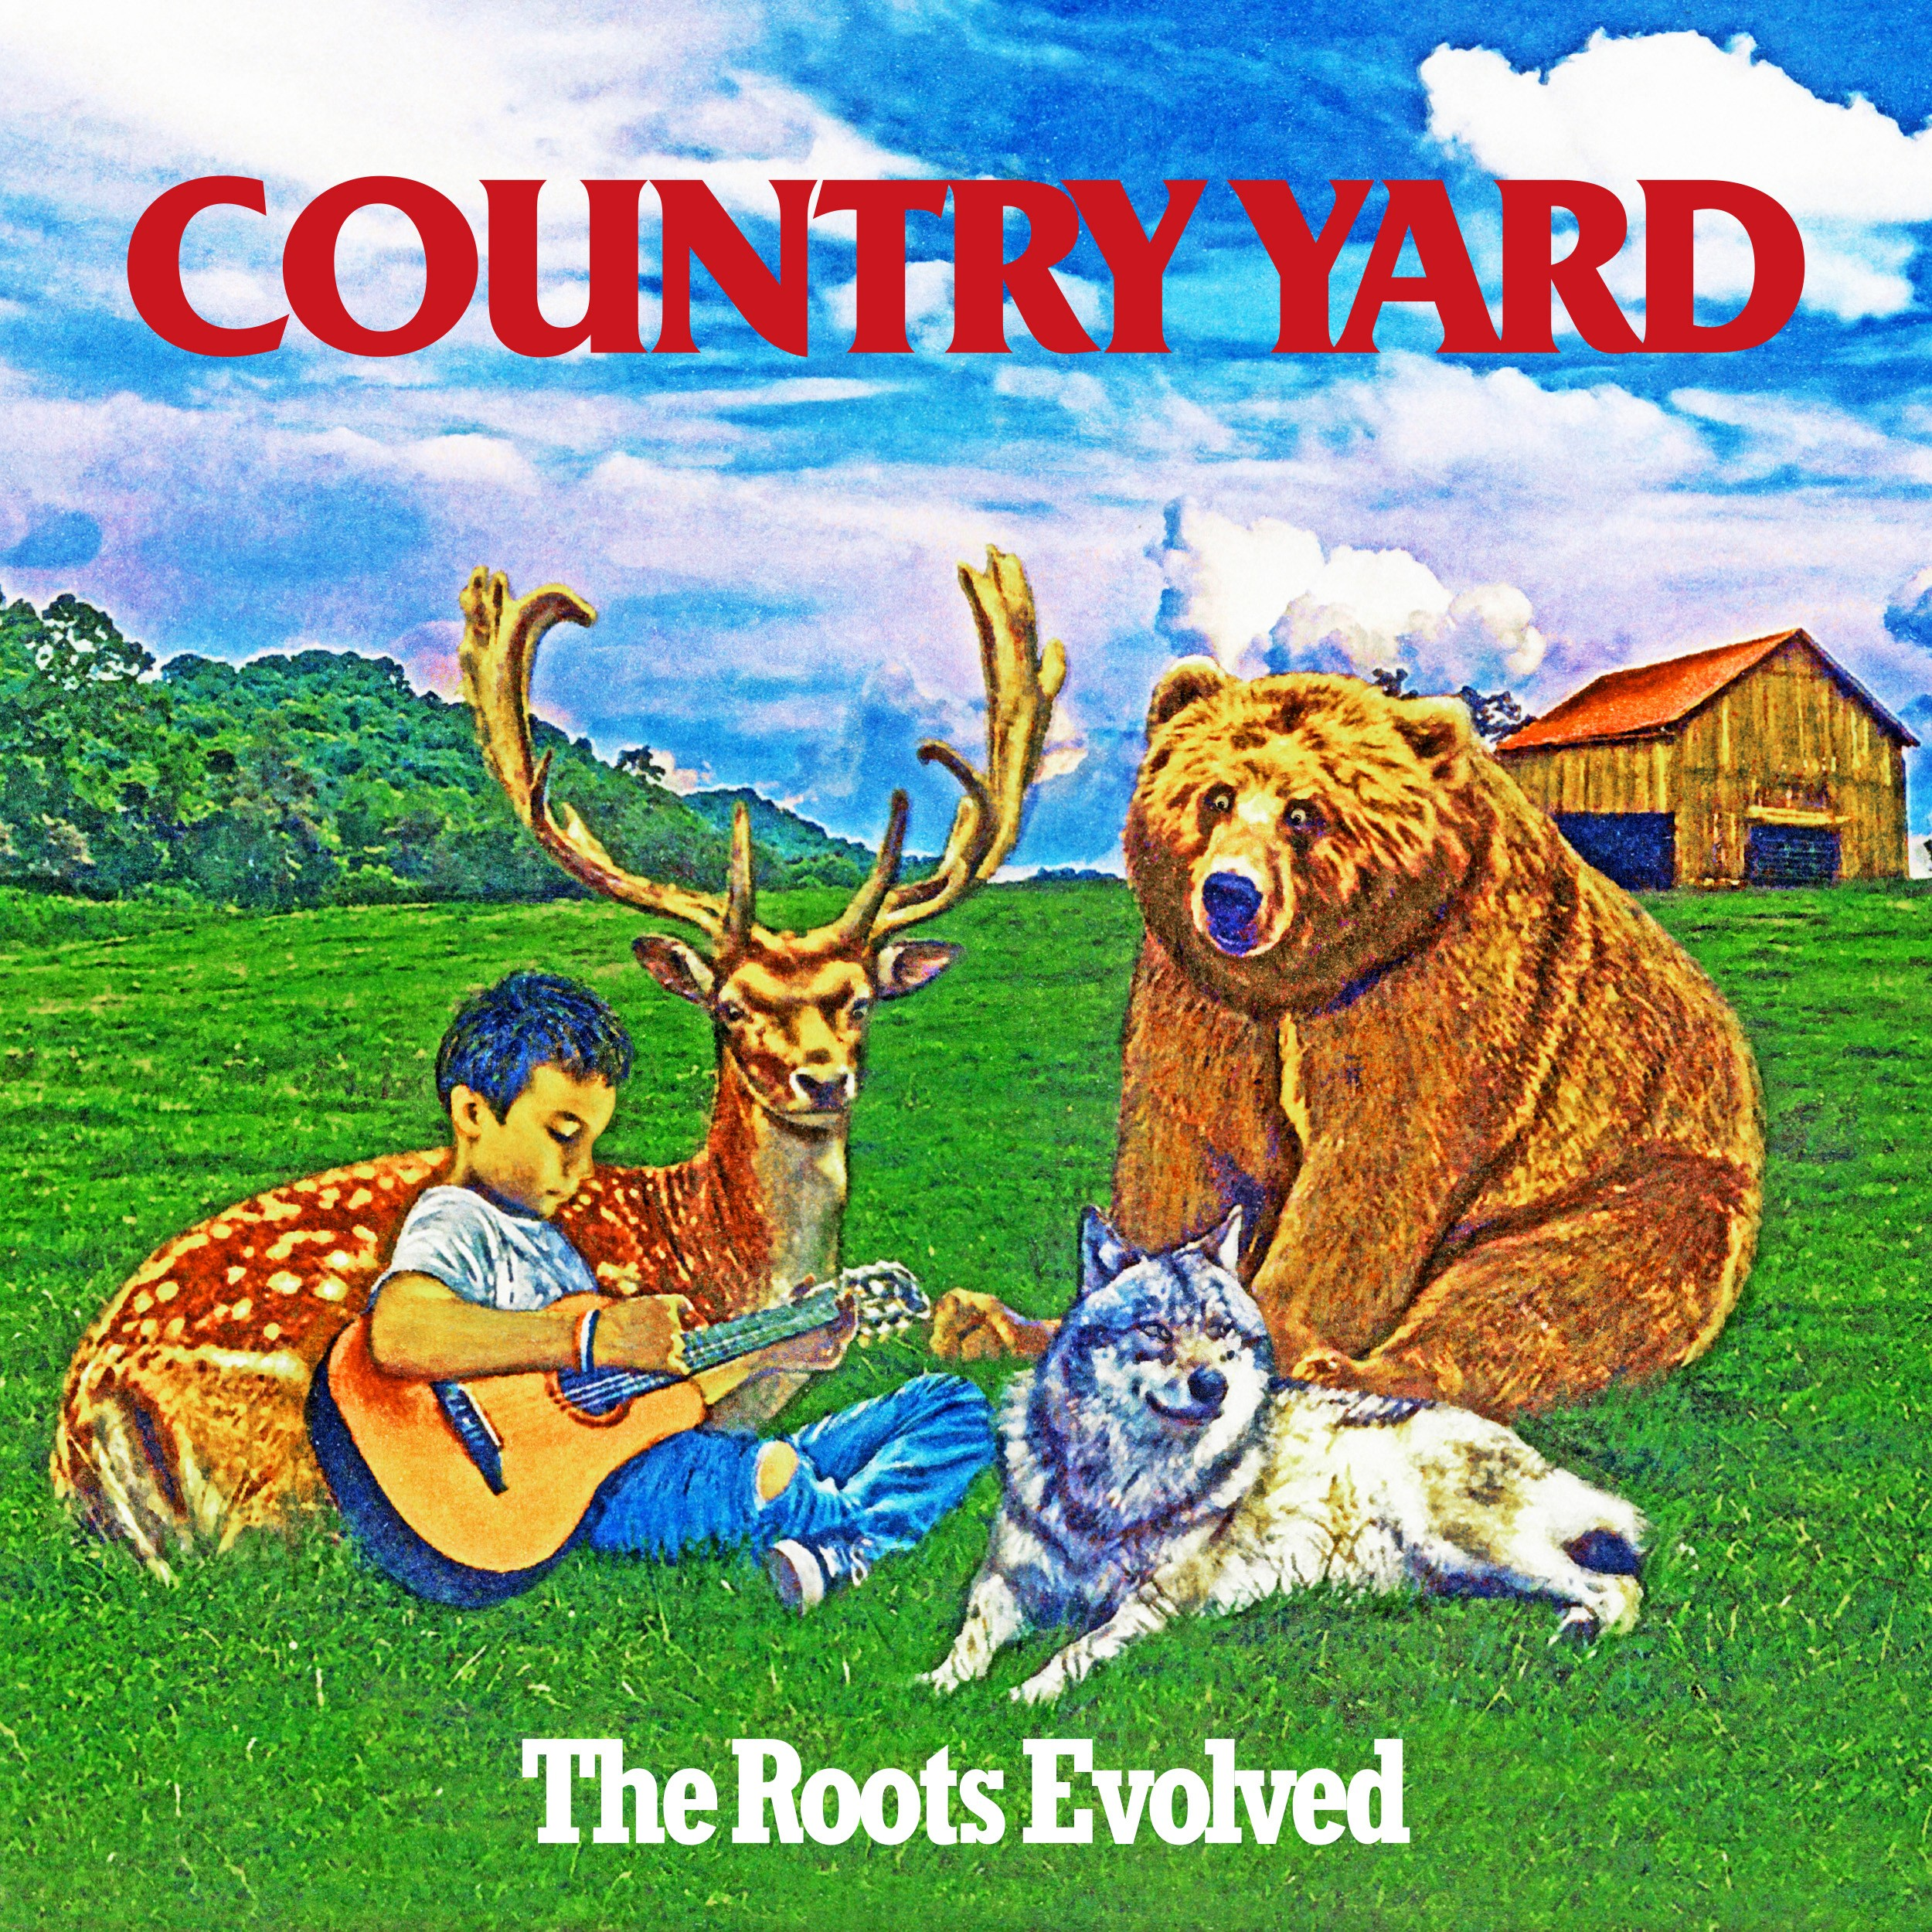 Image of The Roots Evolved / COUNTRY YARD